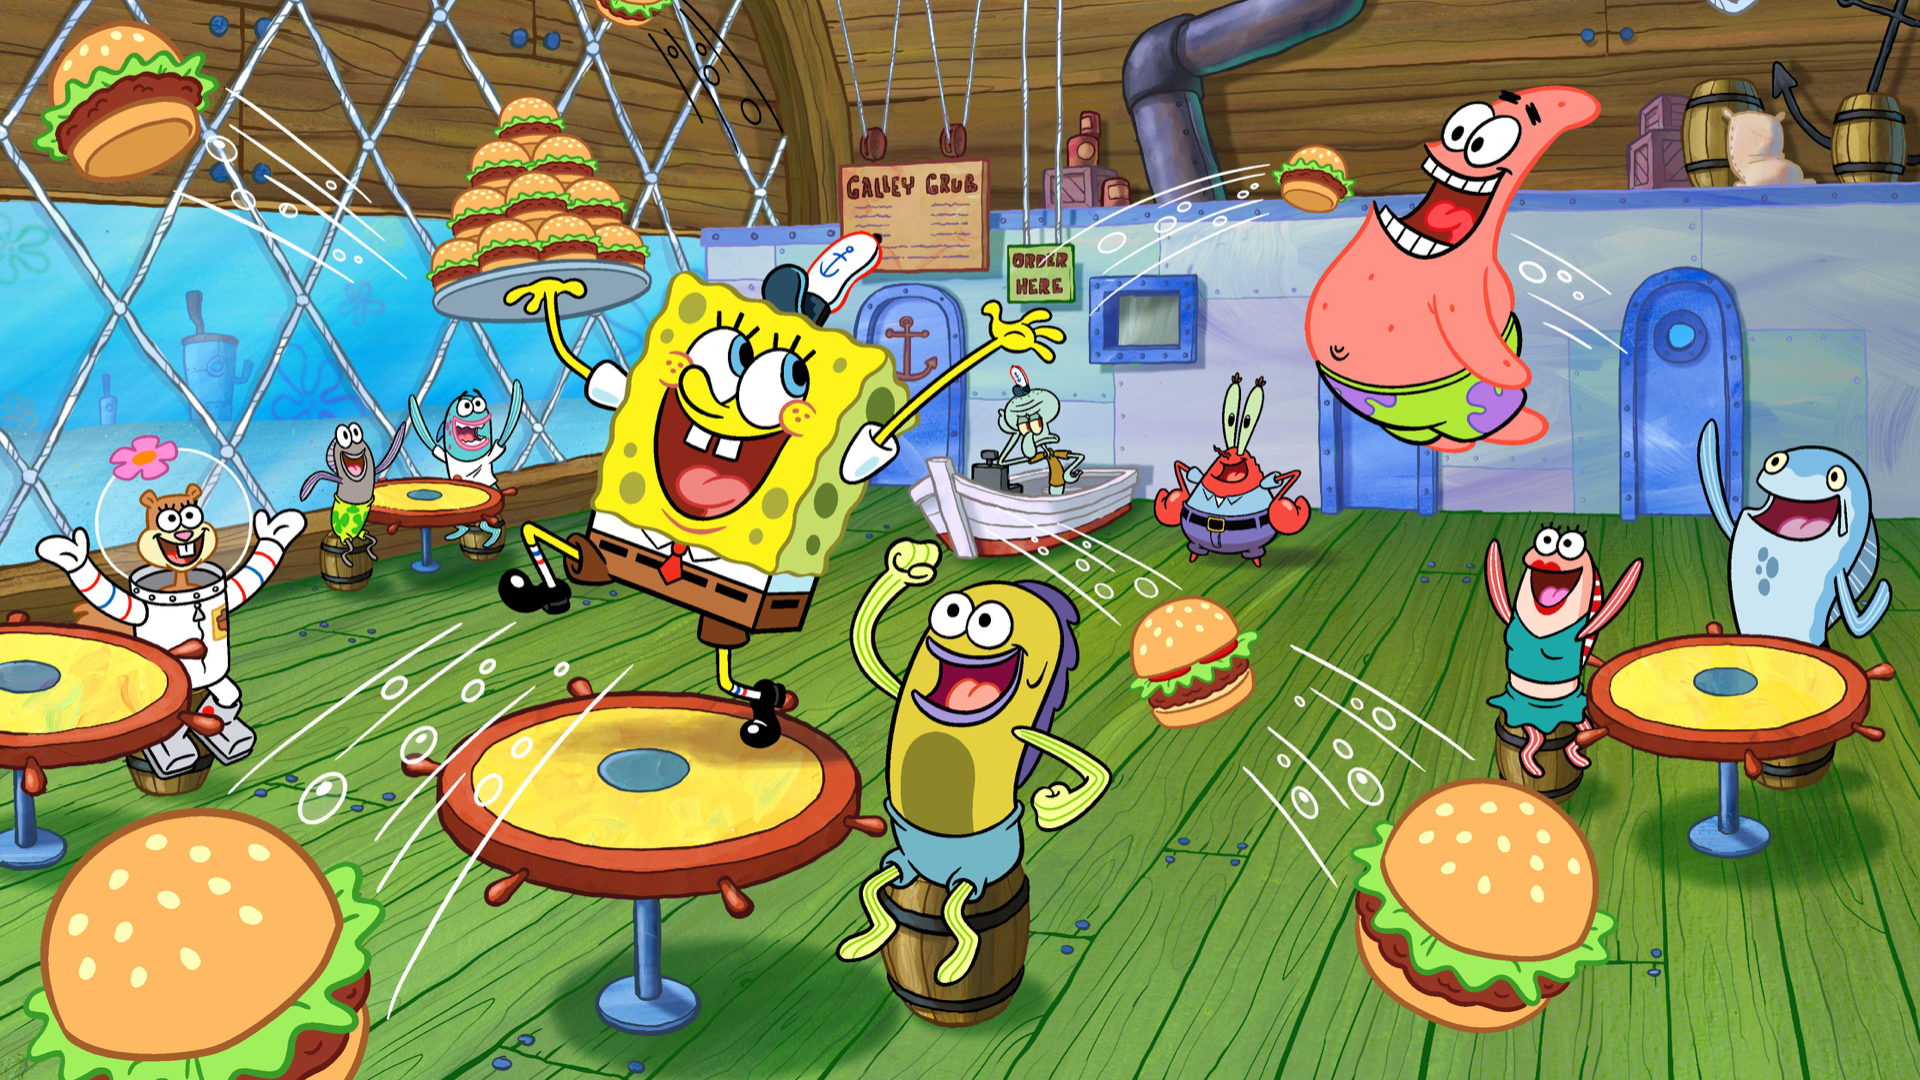 The NFL's Nickelodeon connection has us matching QBs to beloved 'SpongeBob' characters